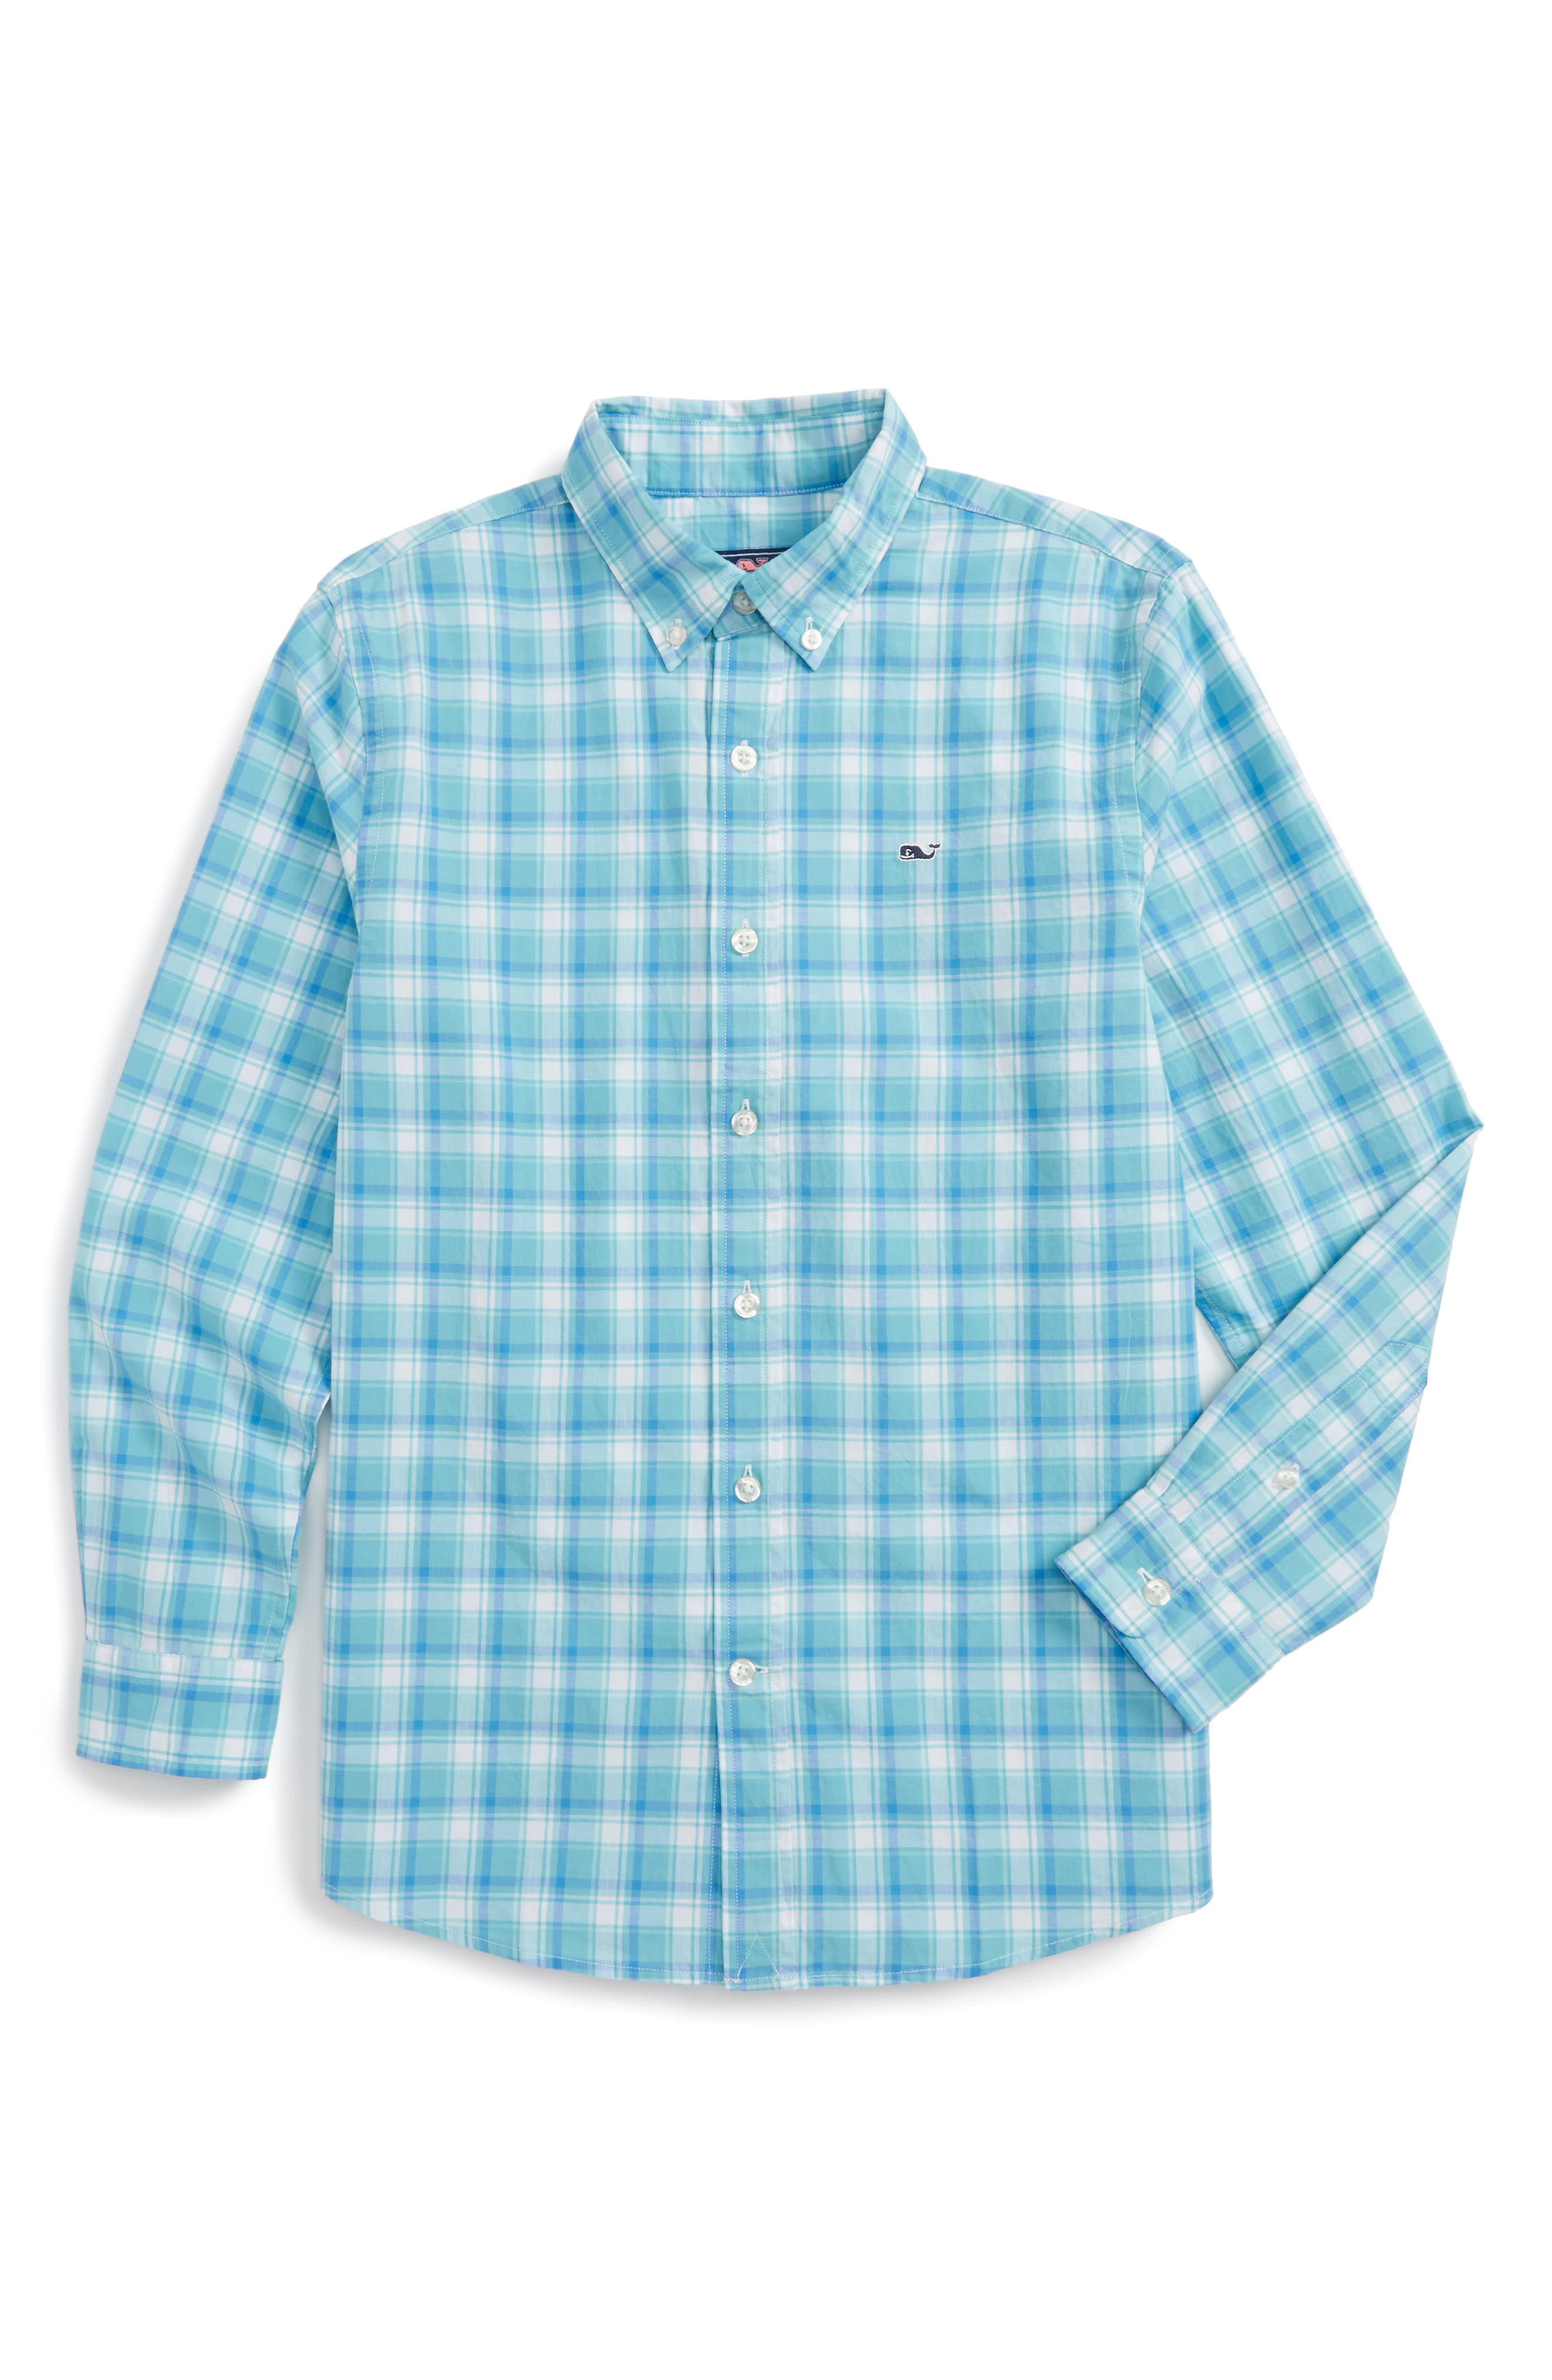 Point Plaid Cotton Shirt,                             Main thumbnail 1, color,                             Aqua Ocean